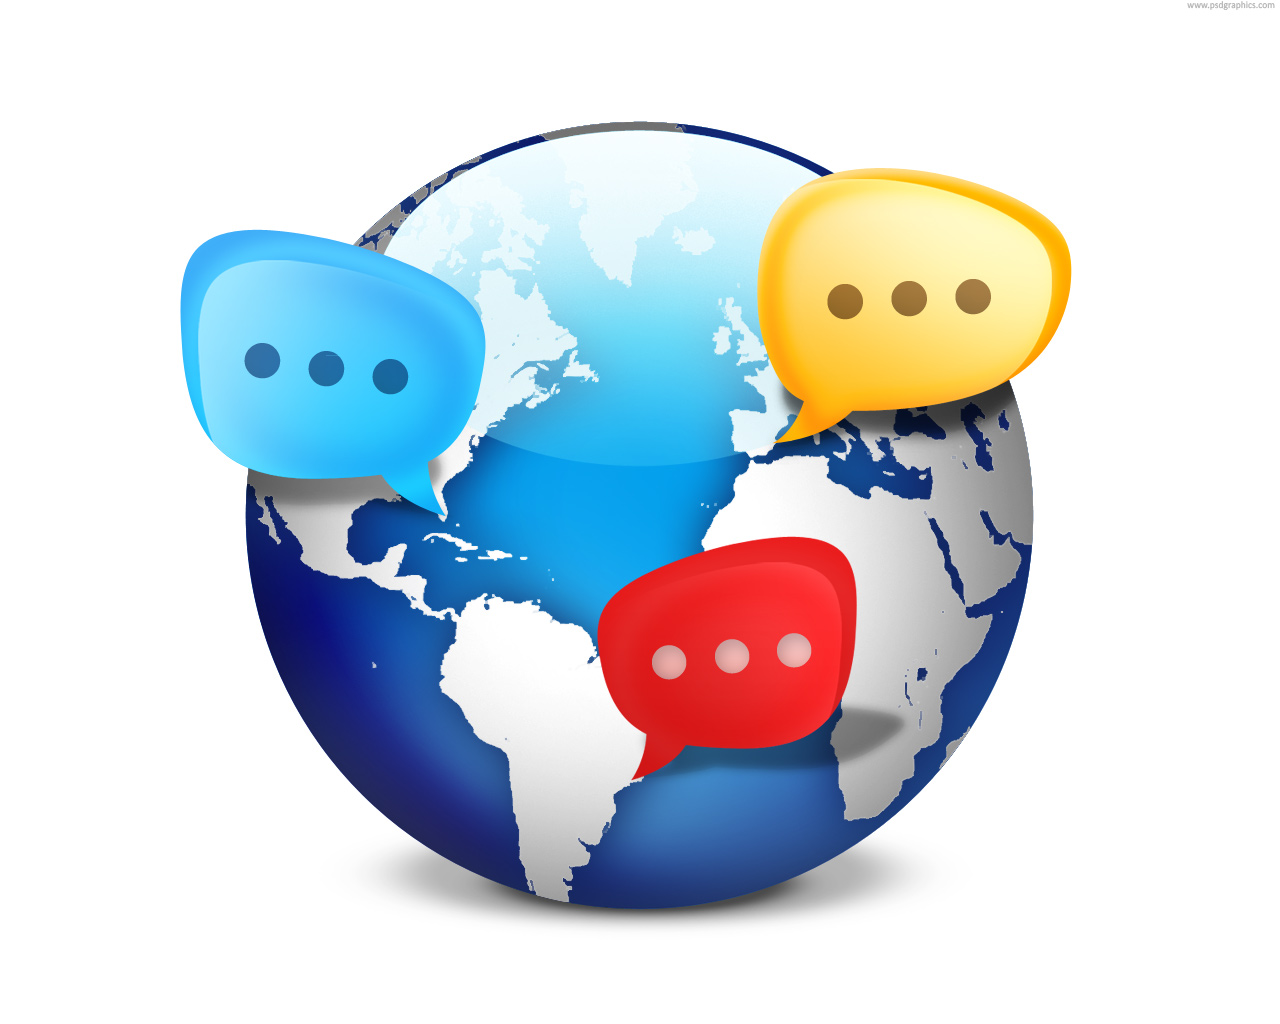 Social Network Icons | Enroute Global Exchange image #1924